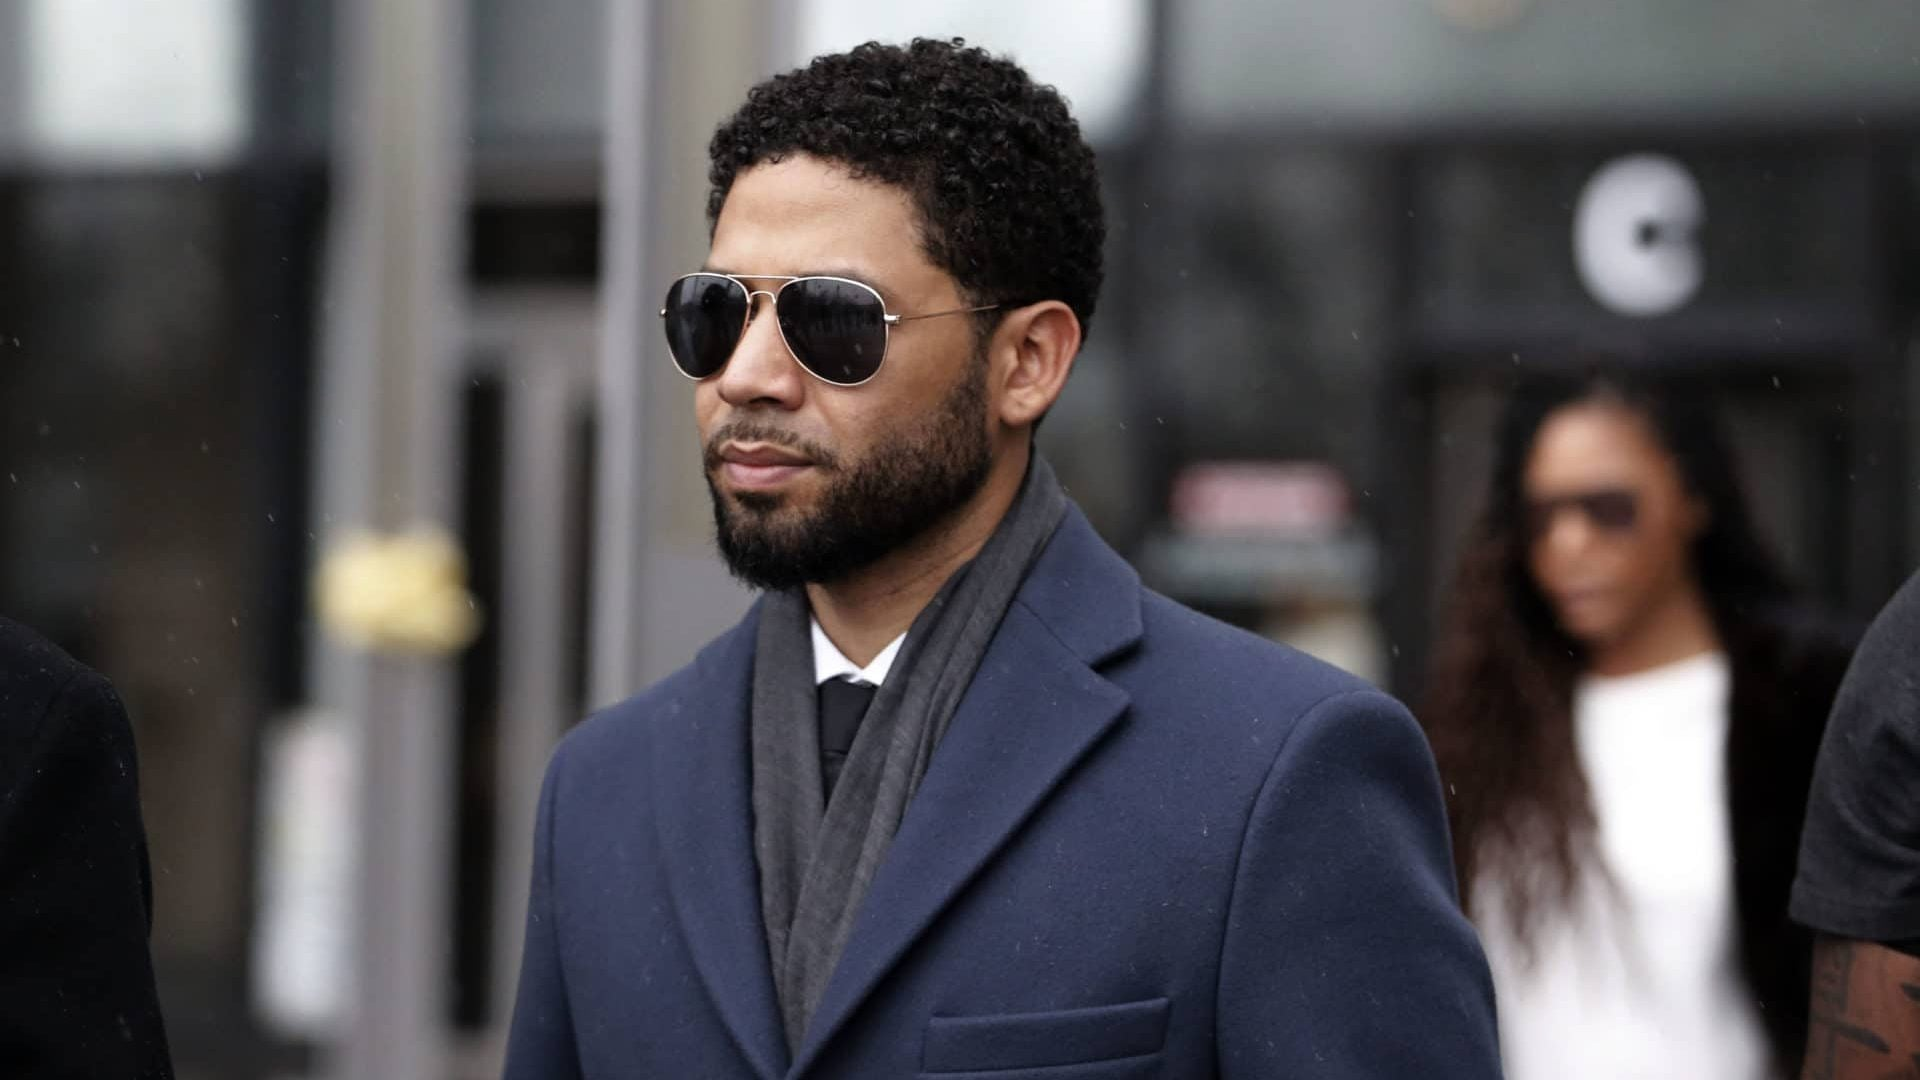 Jussie Smollett's Lawyer Says They're 'Weighing Options' To